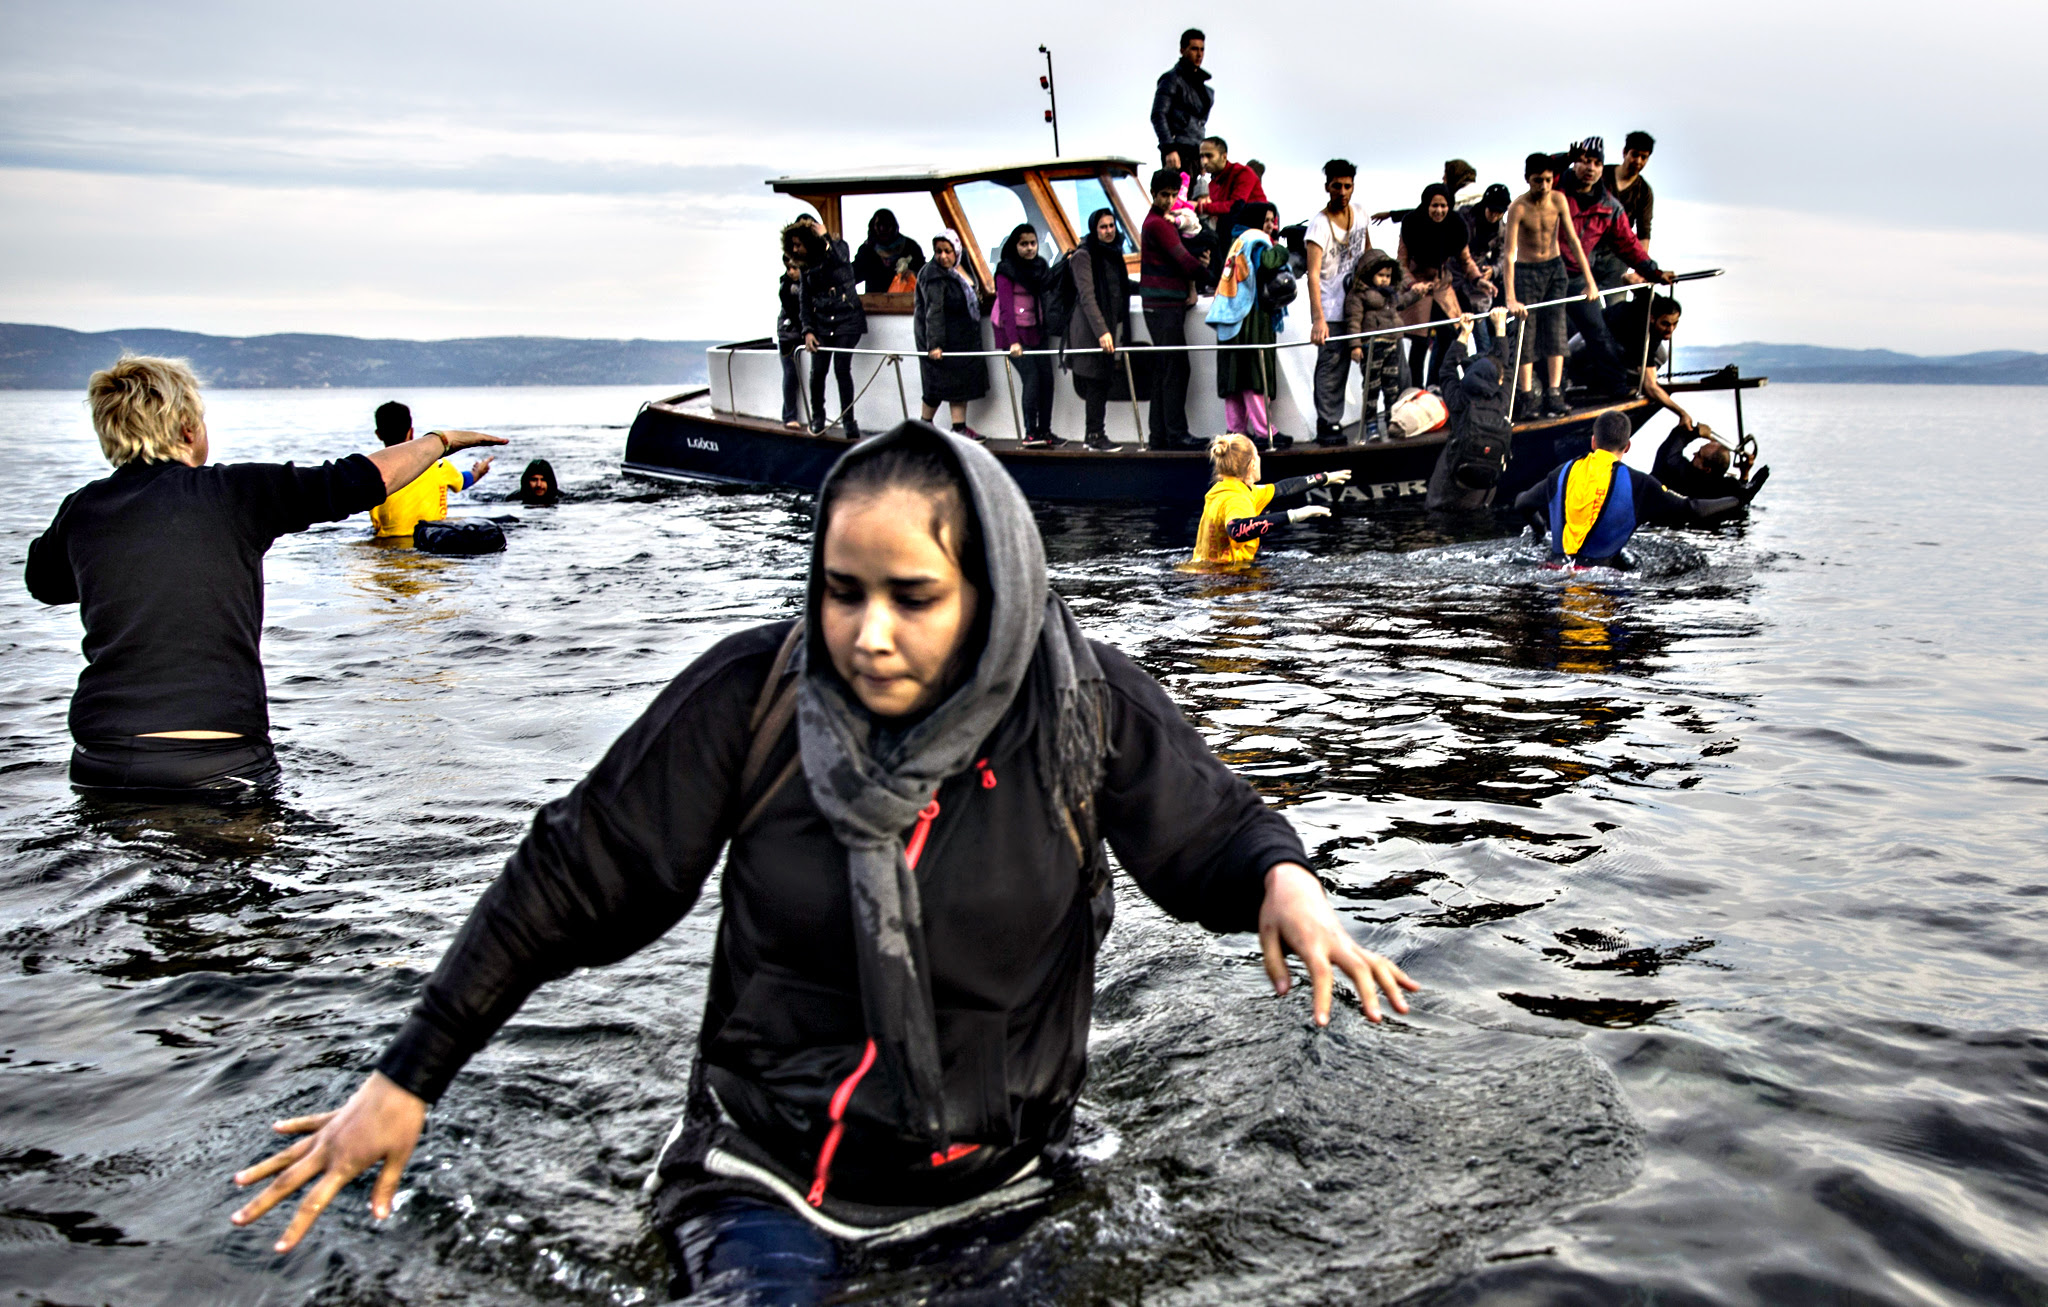 A girl walks through the water as other migrants and refugees helped by volunteers  to disembark from a small boat after their arrival from the Turkish coast on the northeastern Greek island of Lesbos  Monday, Nov. 16, 2015. Greek authorities say 1,244 refugees and economic migrants have been rescued from frail craft in danger over the past three days in the Aegean Sea, as thousands continue to arrive on the Greek islands